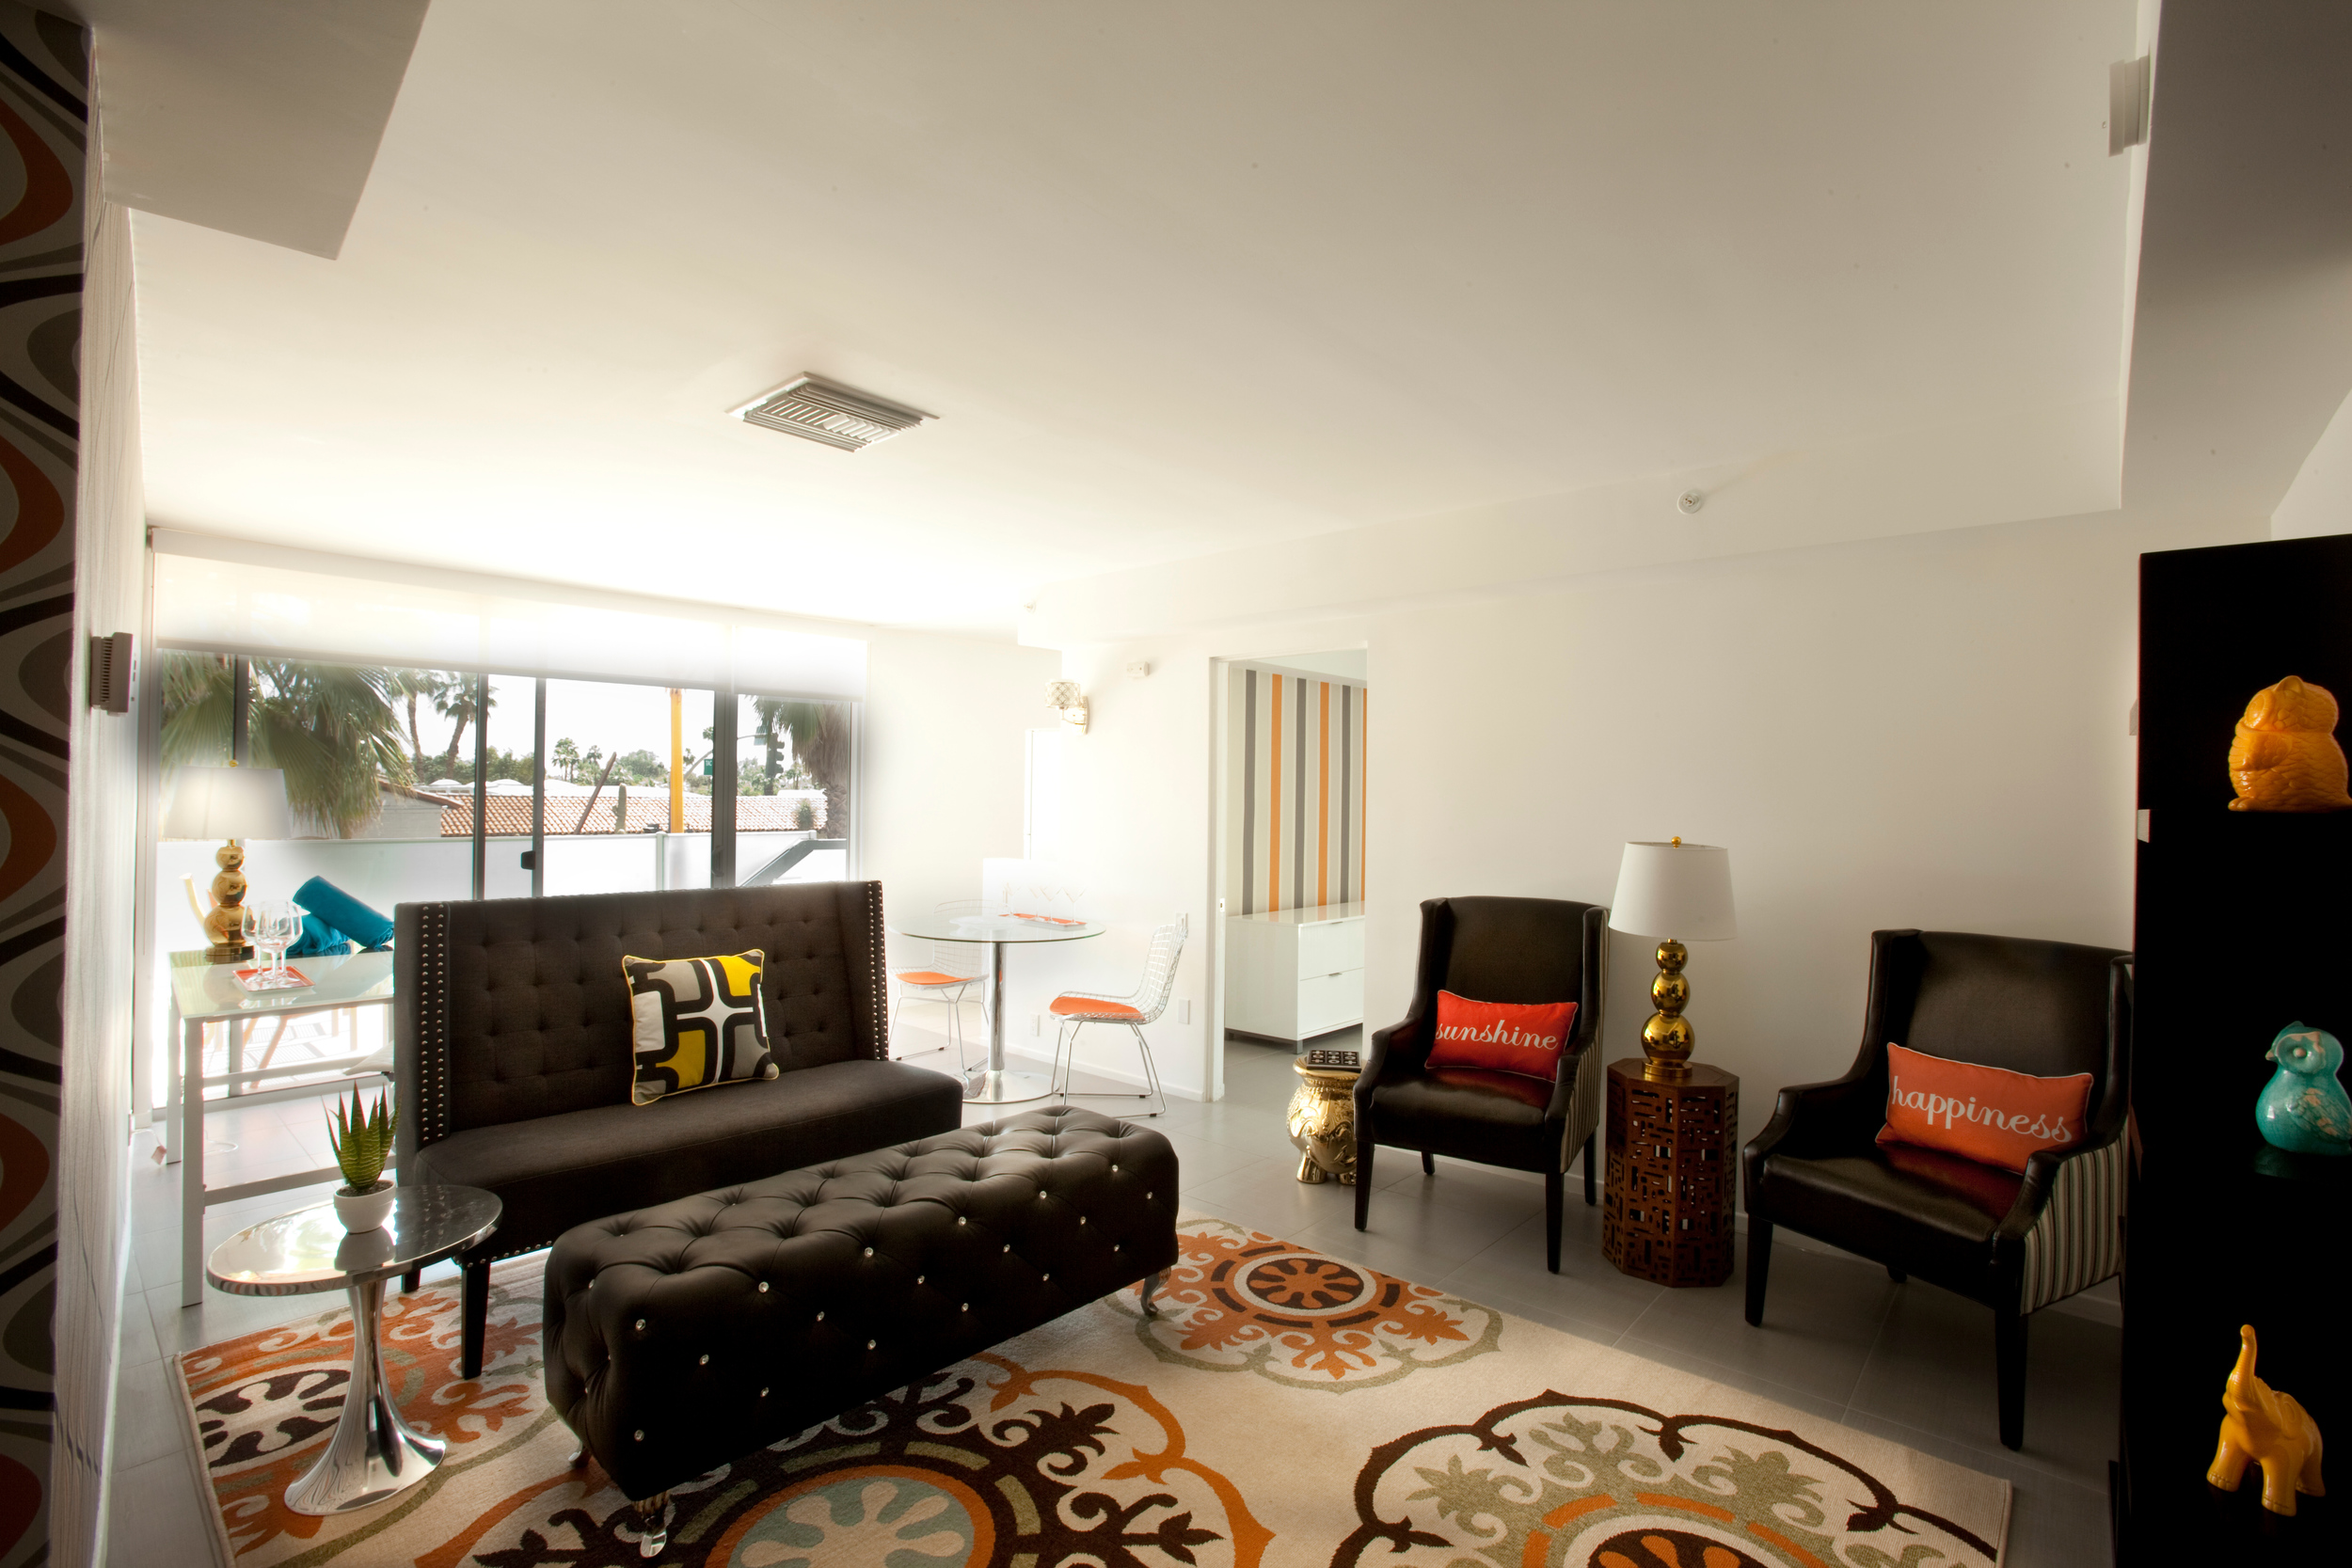 Unit 219: One Bedroom Specialty Suite